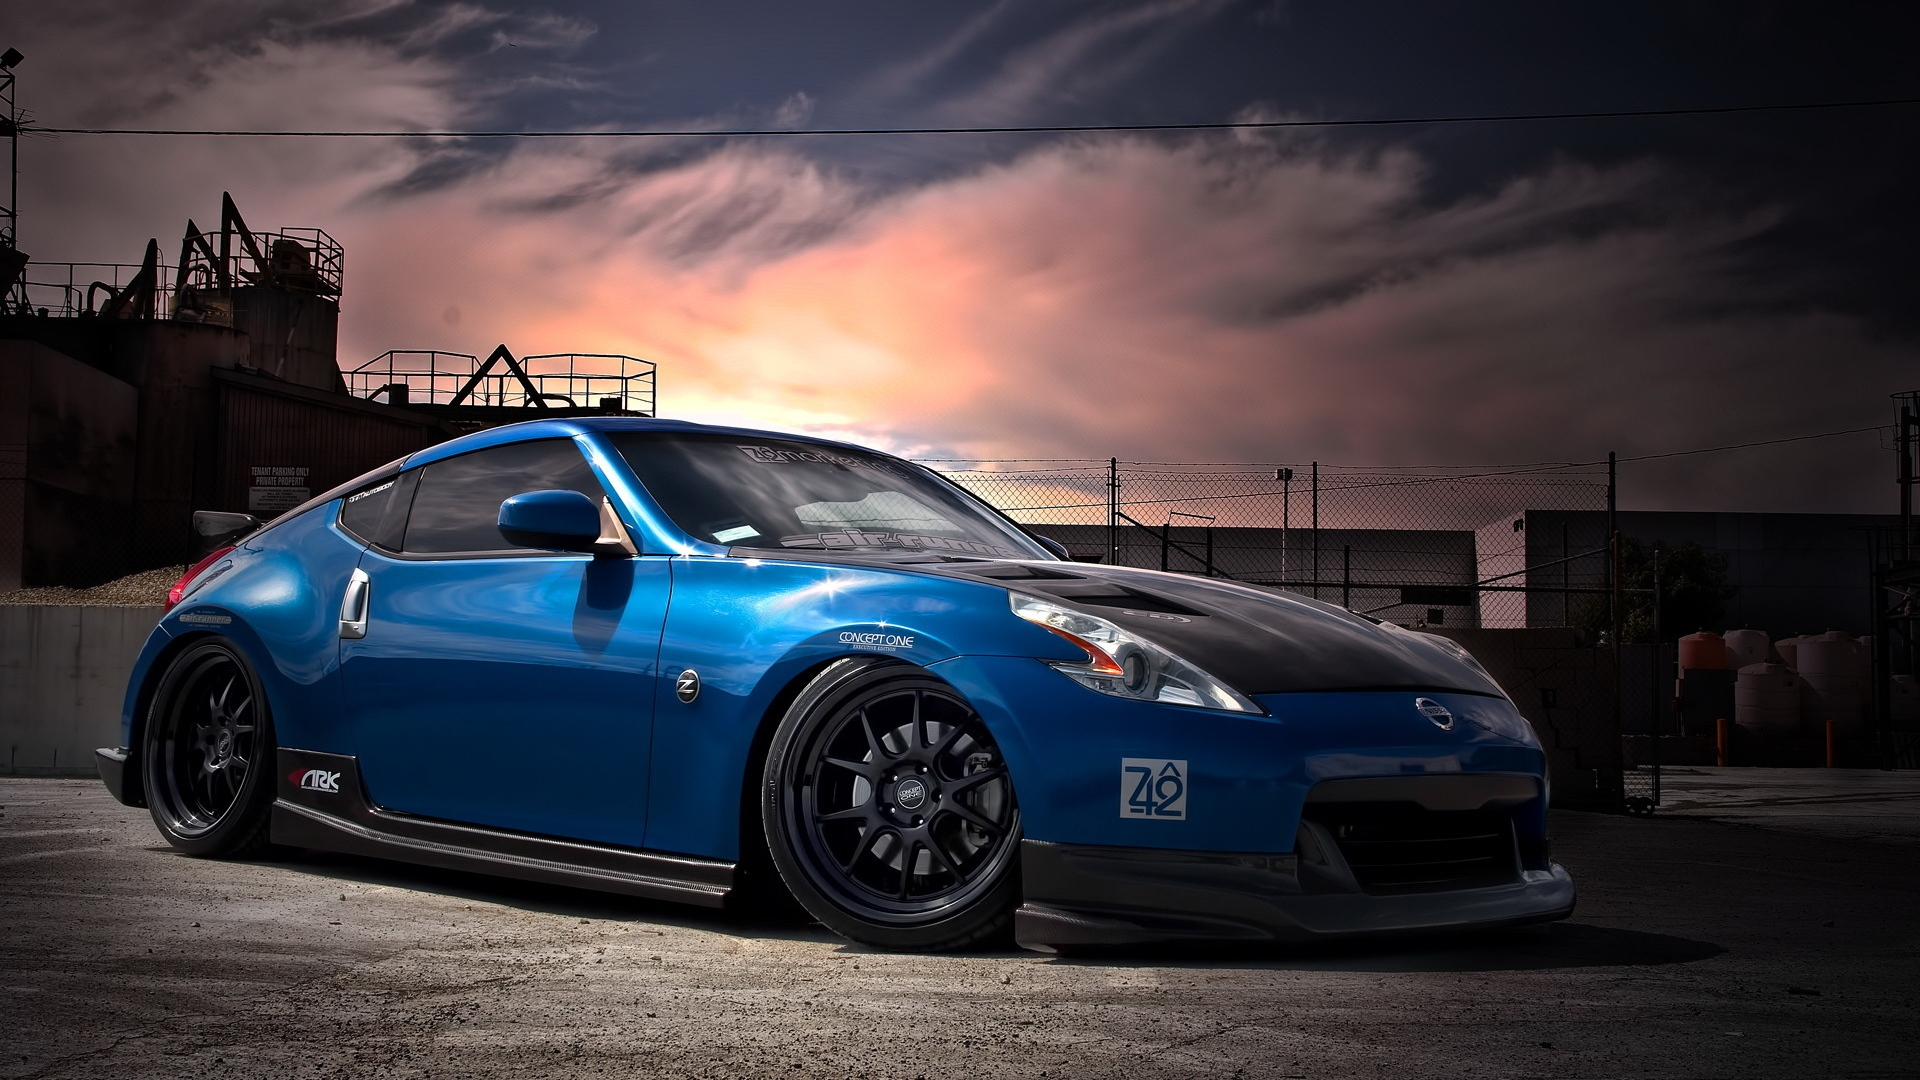 download wallpaper 1920x1080 nissan 370z tuning blue. Black Bedroom Furniture Sets. Home Design Ideas